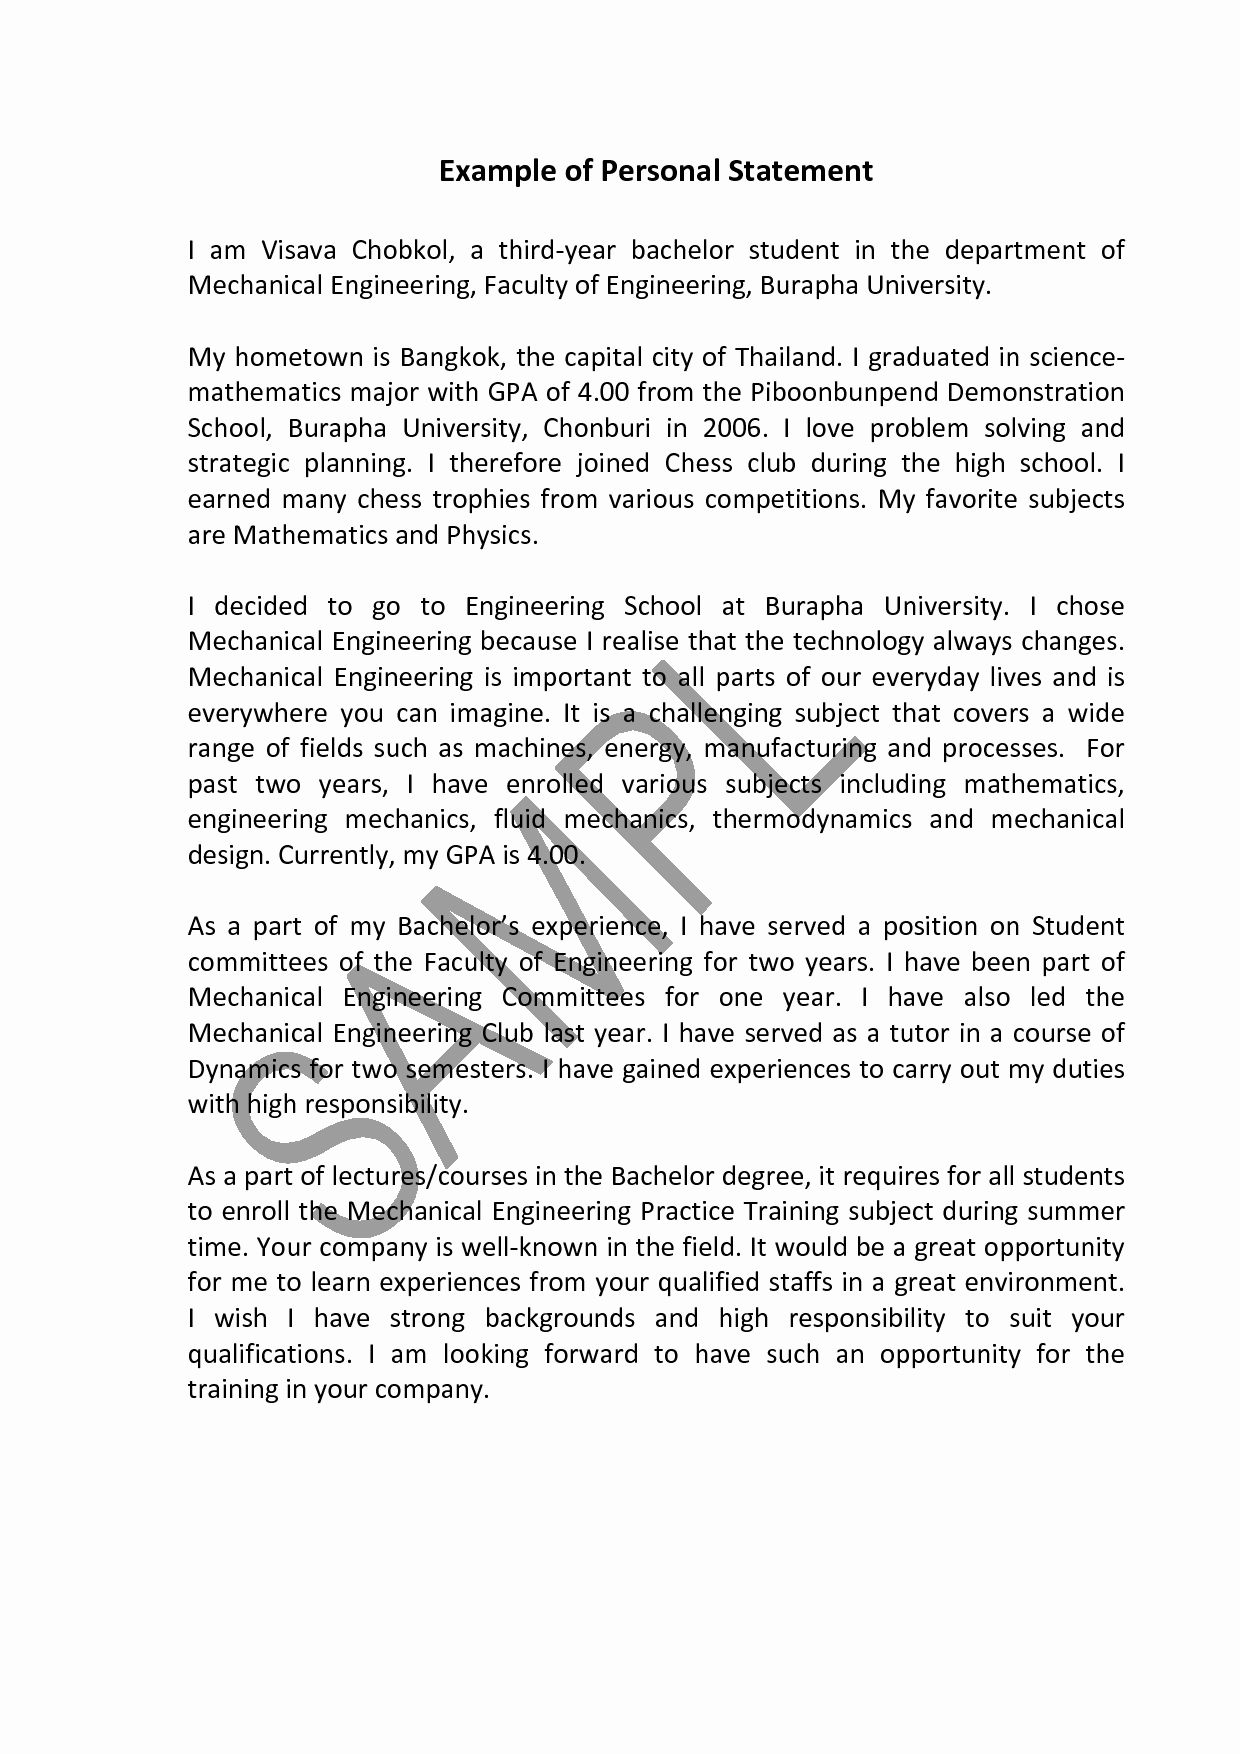 A Written Statement Luxury How To Write Your Personal Statement For University Personal Statement Examples Personal Statement Essay Examples